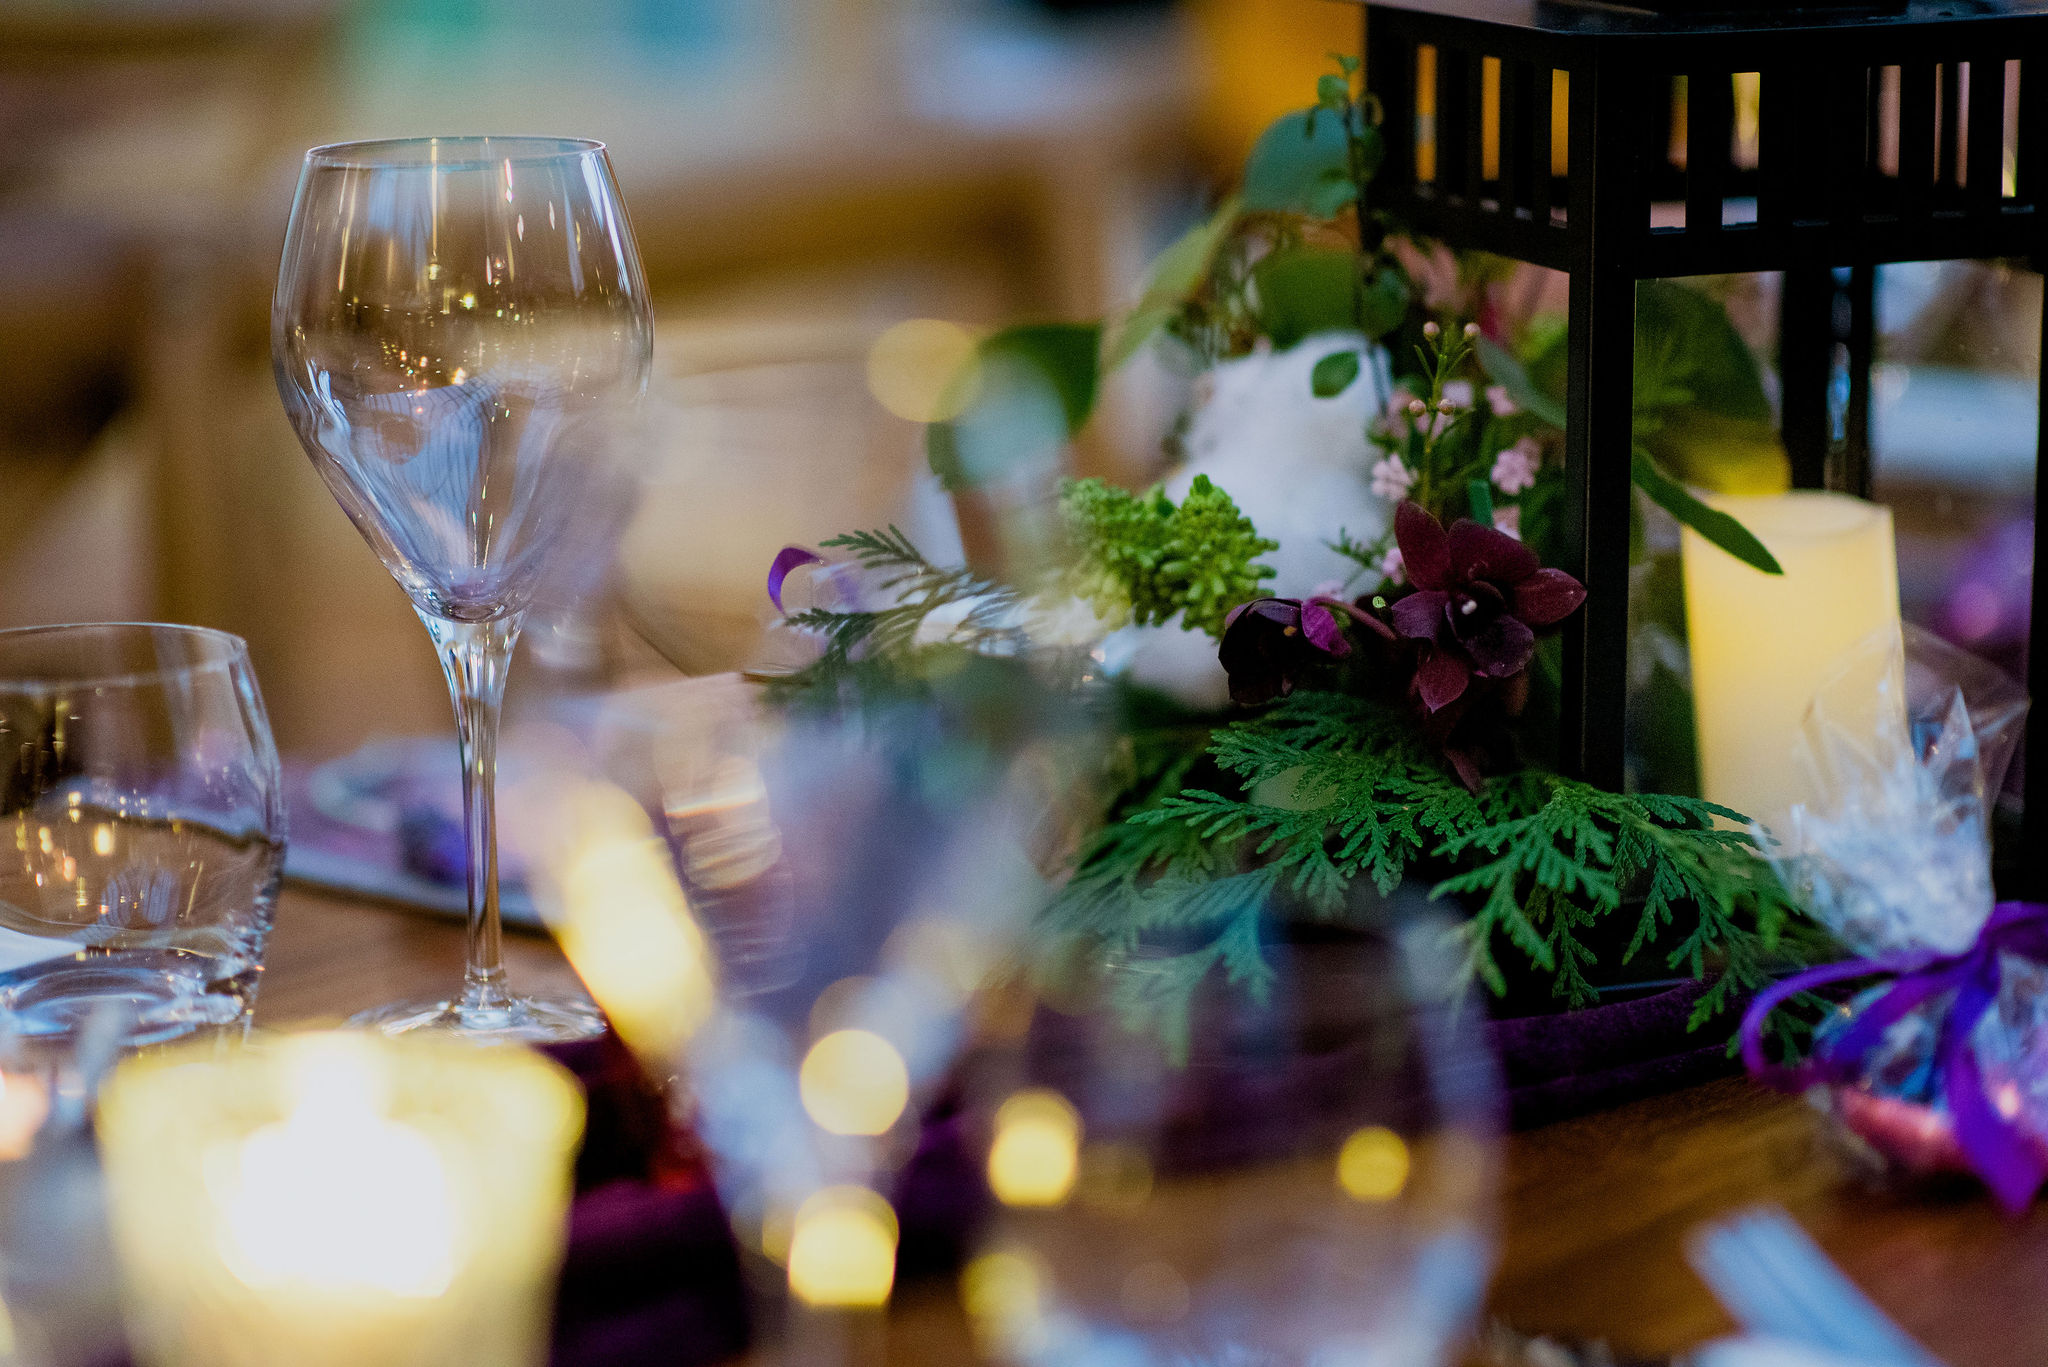 Detail shot of table setting, close up of wine glass and lantern